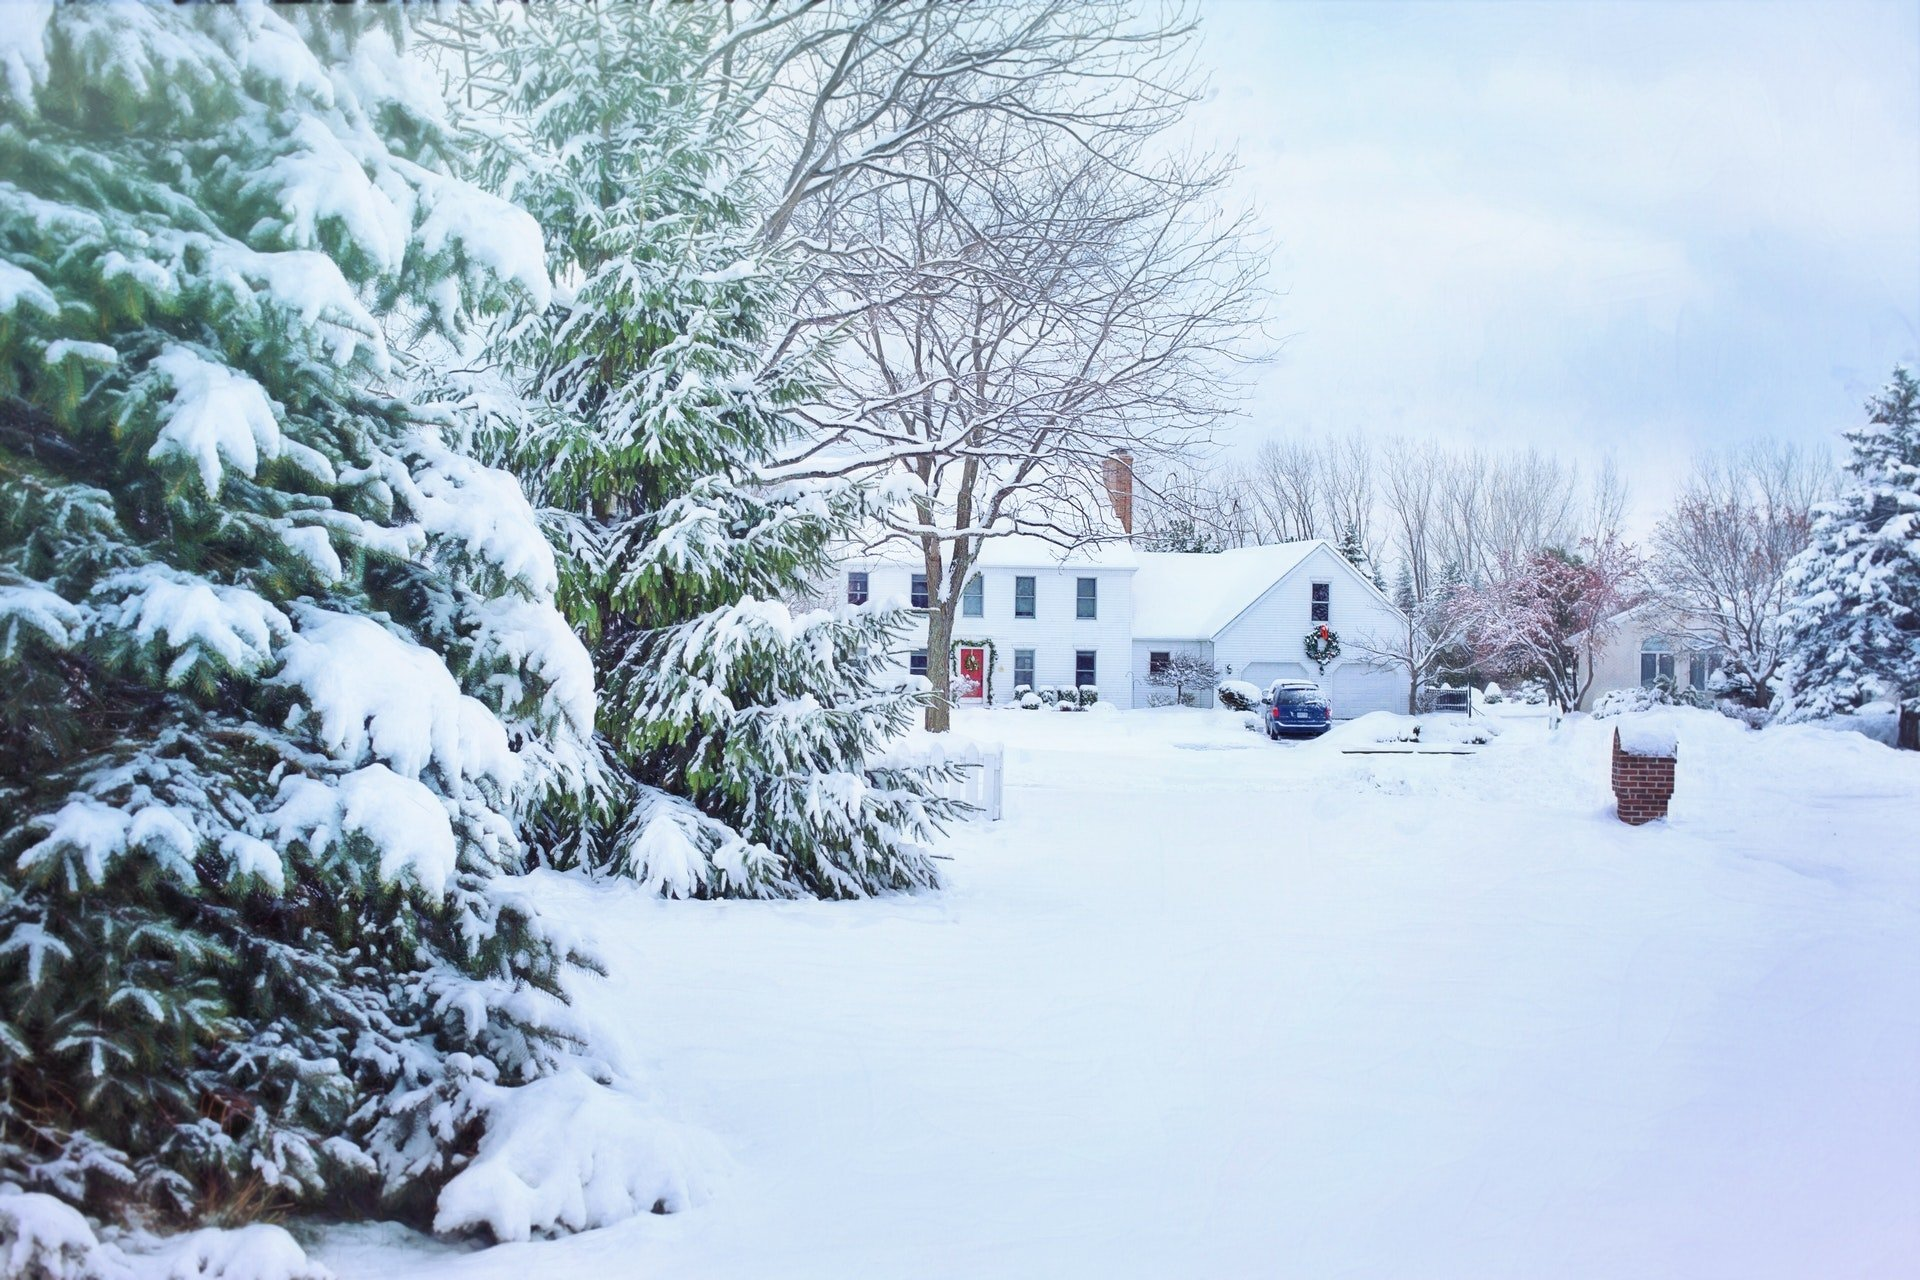 Photo of a house covered in snow | Photo: Pexels